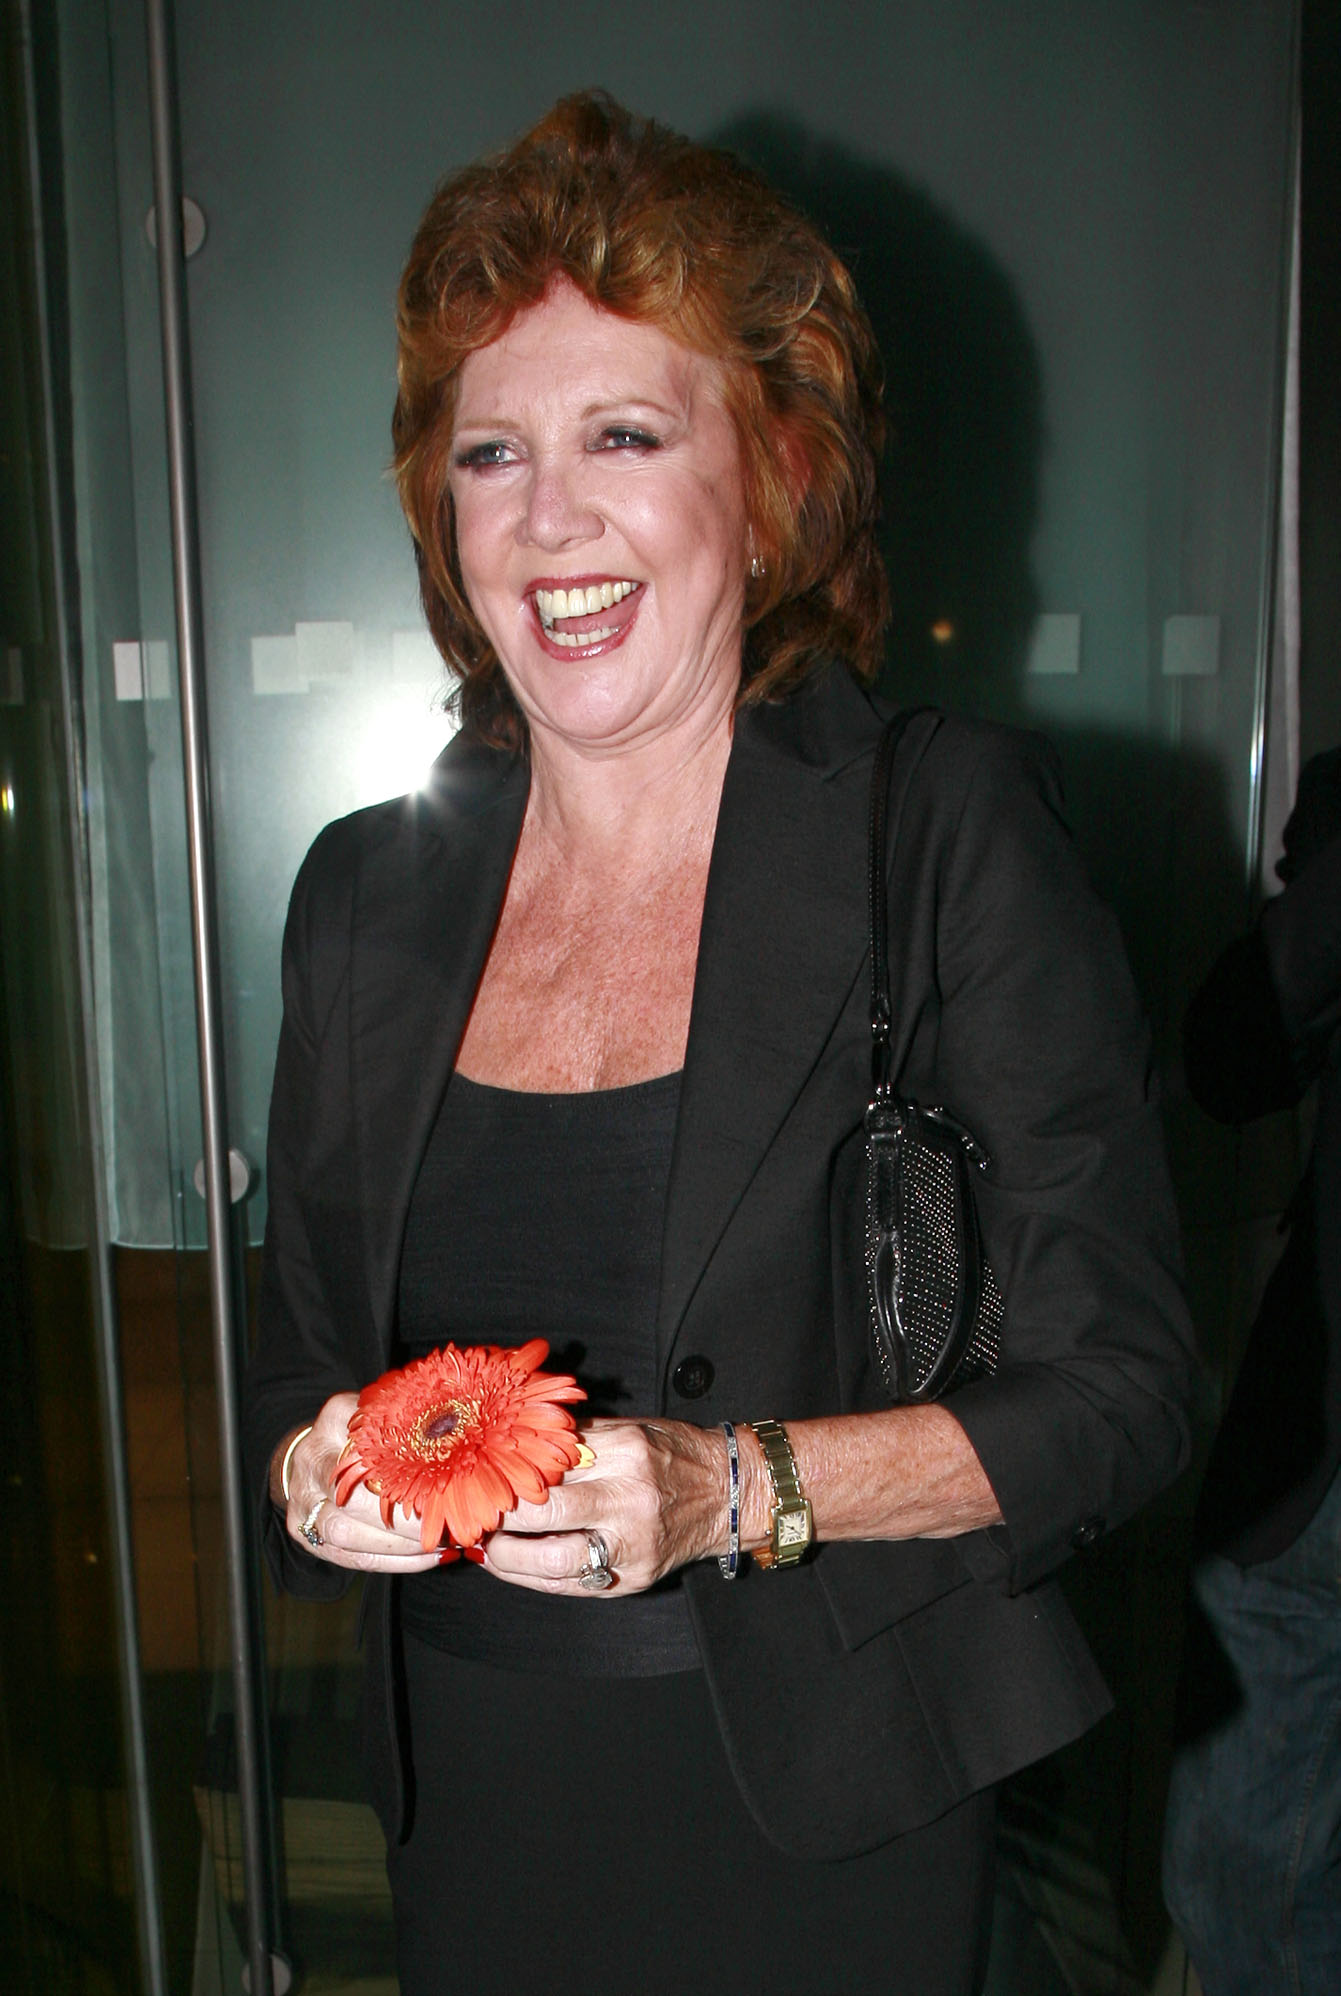 Cilla has a chuckle as all the photographers sing the Blind Date theme tune to her leaving Bungalow 8